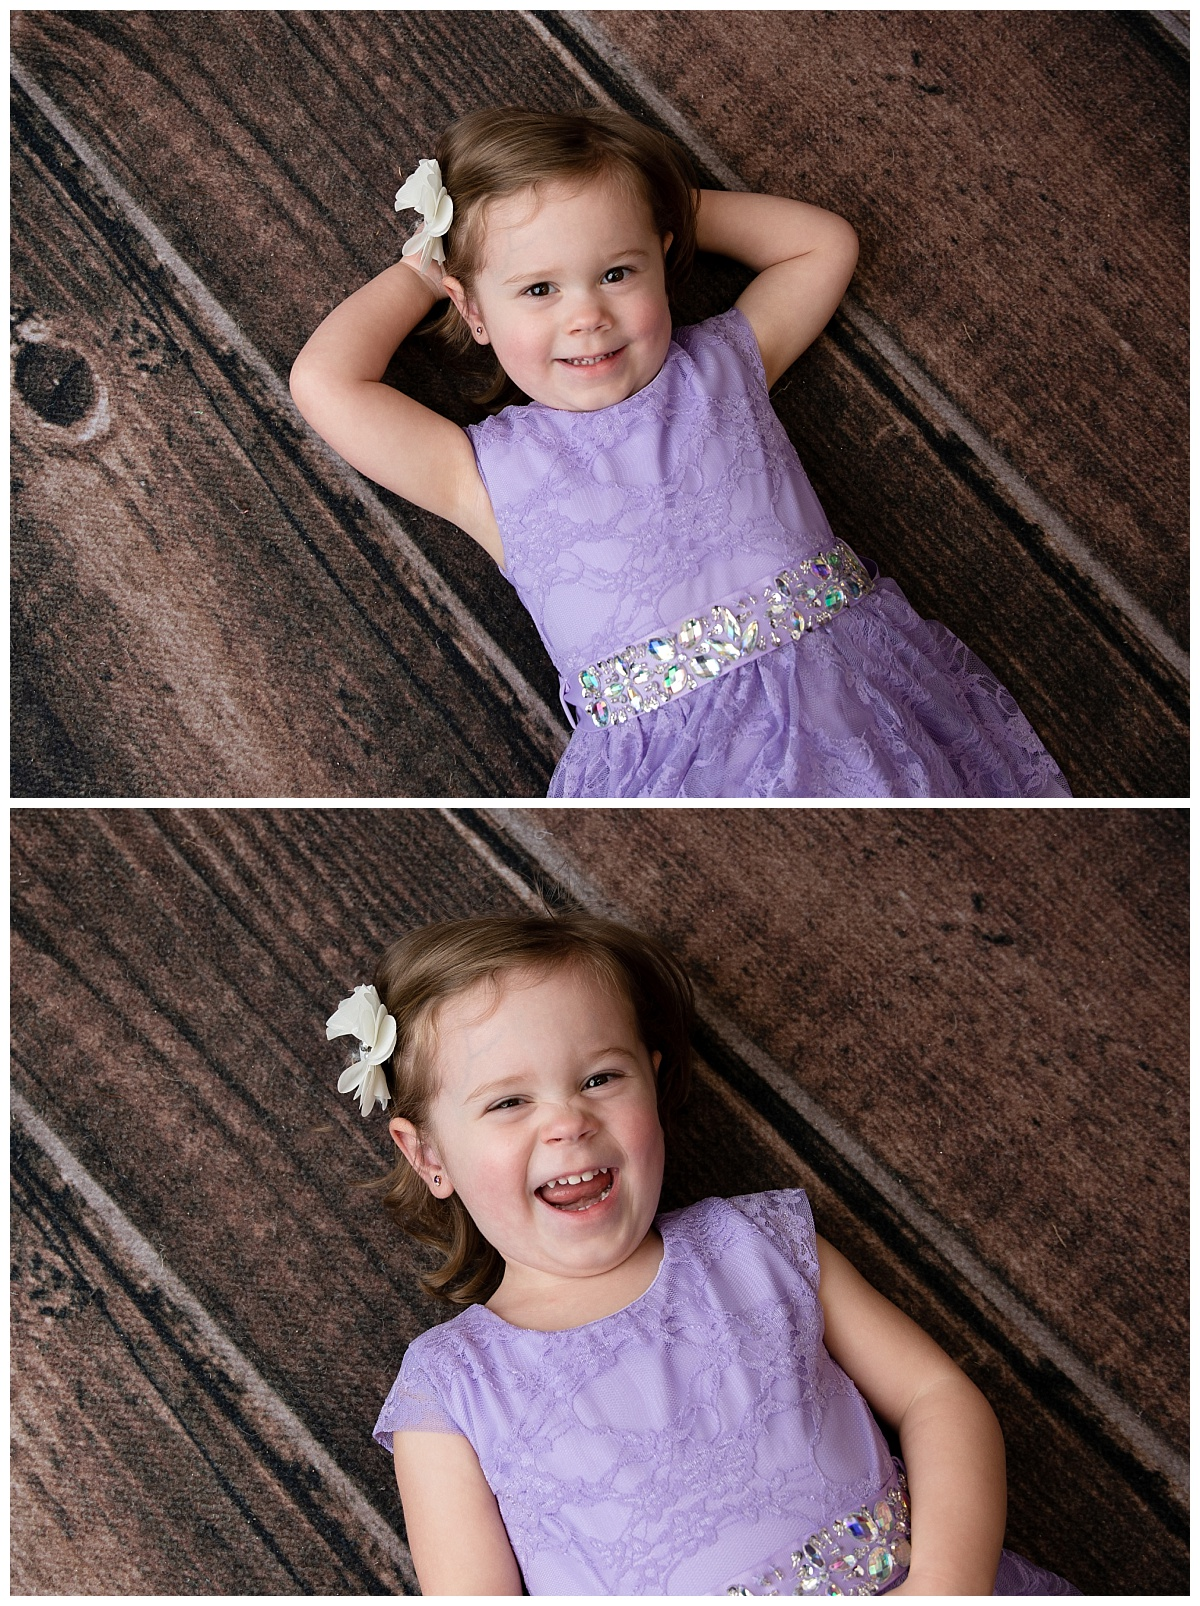 st-louis-birthday-photographer-three-year-old-girl-laying-on-wood-floor.jpg